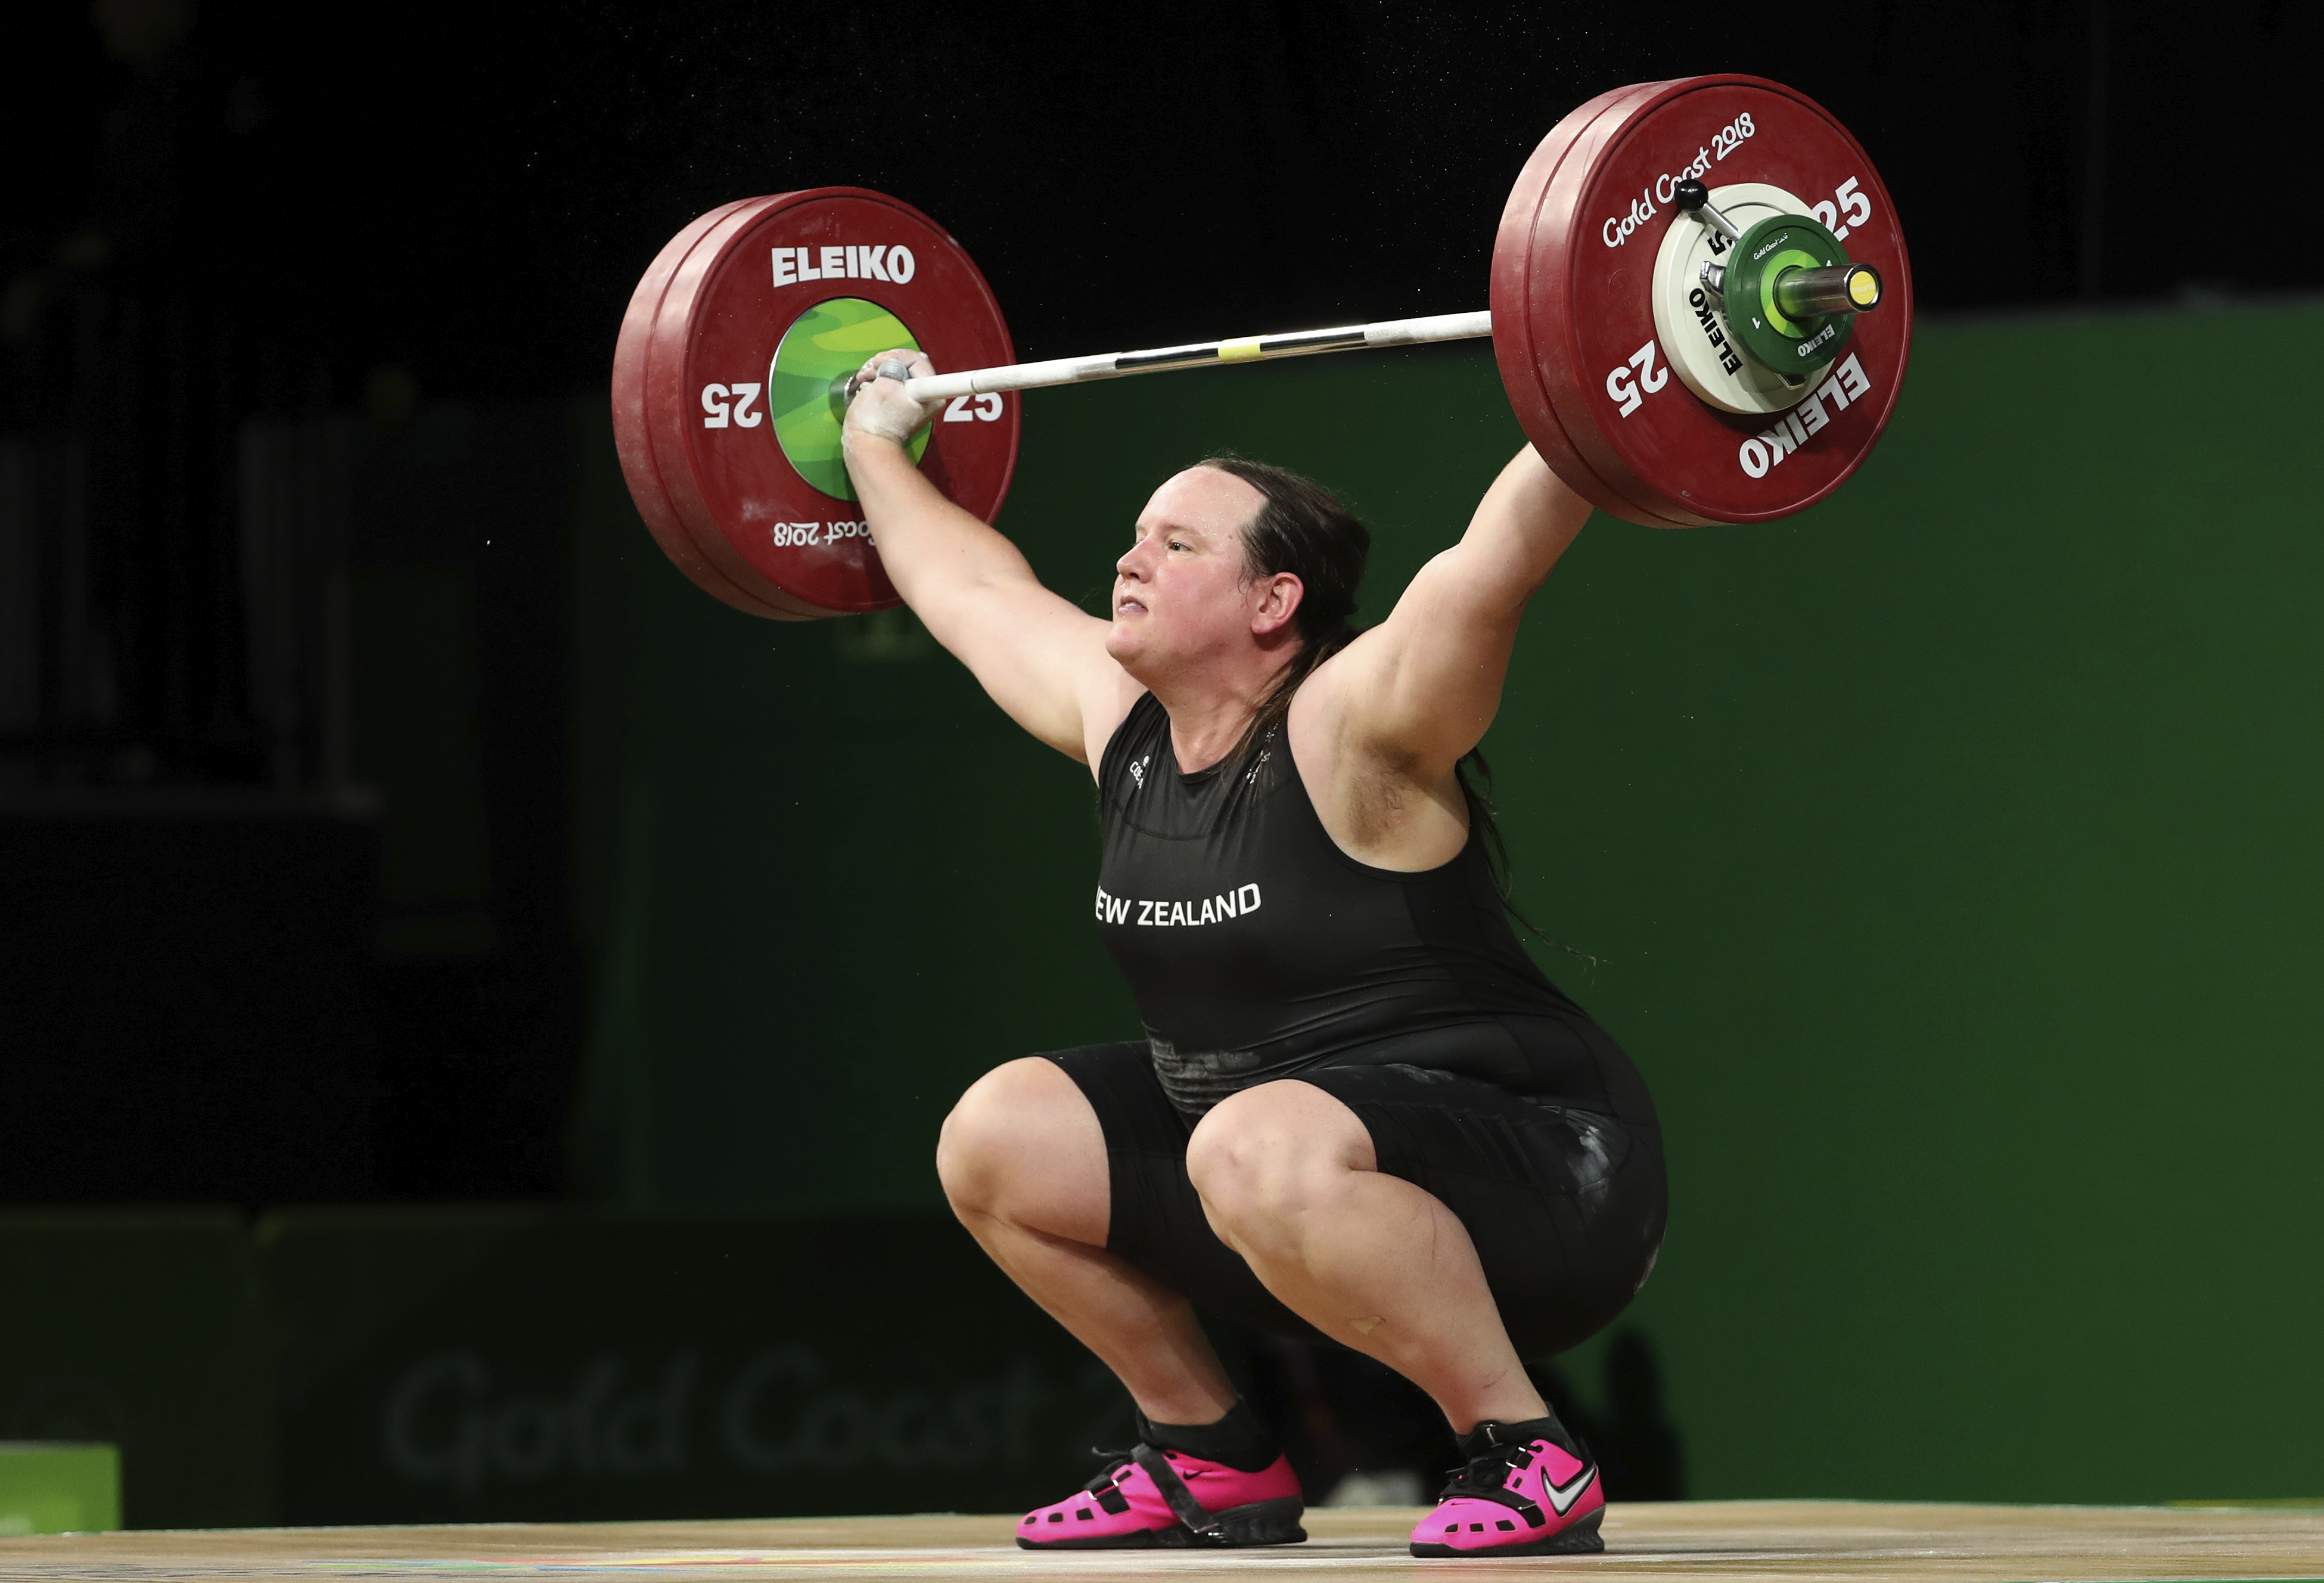 In this April 9, 2018 file photo, New Zealand's Laurel Hubbard lifts in the snatch of the women's +90kg weightlifting final at the 2018 Commonwealth Games on the Gold Coast, Australia. Hubbard will be the first transgender athlete to compete at the Olympics. Hubbard is among five athletes confirmed on New Zealand's weightlifting team for the Tokyo Games.